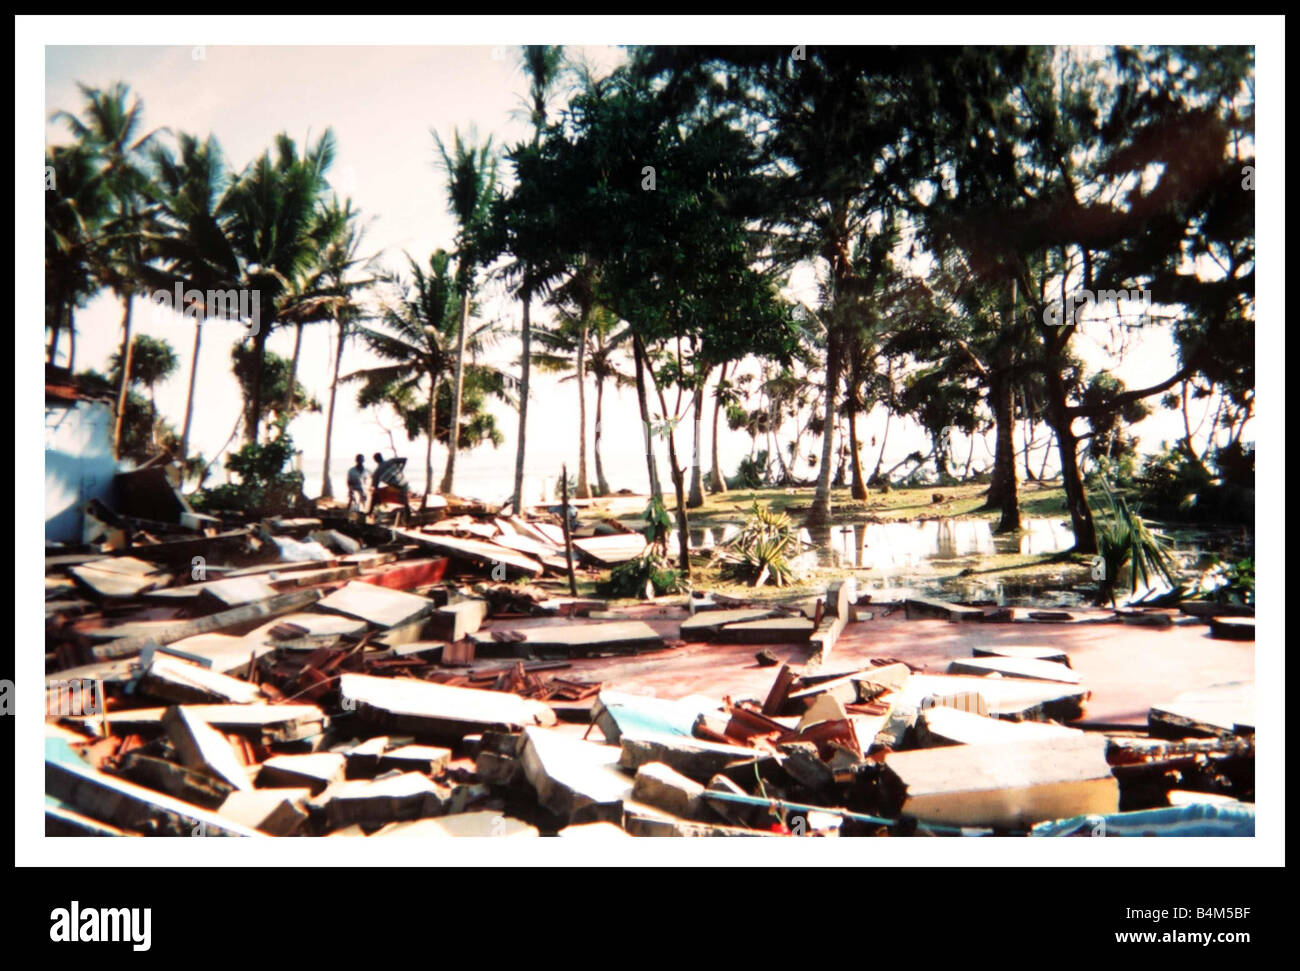 Natural Disaster Tsunami in Sri Lanka December 2004 The village of Midigama which was hit by giant wave showing - Stock Image